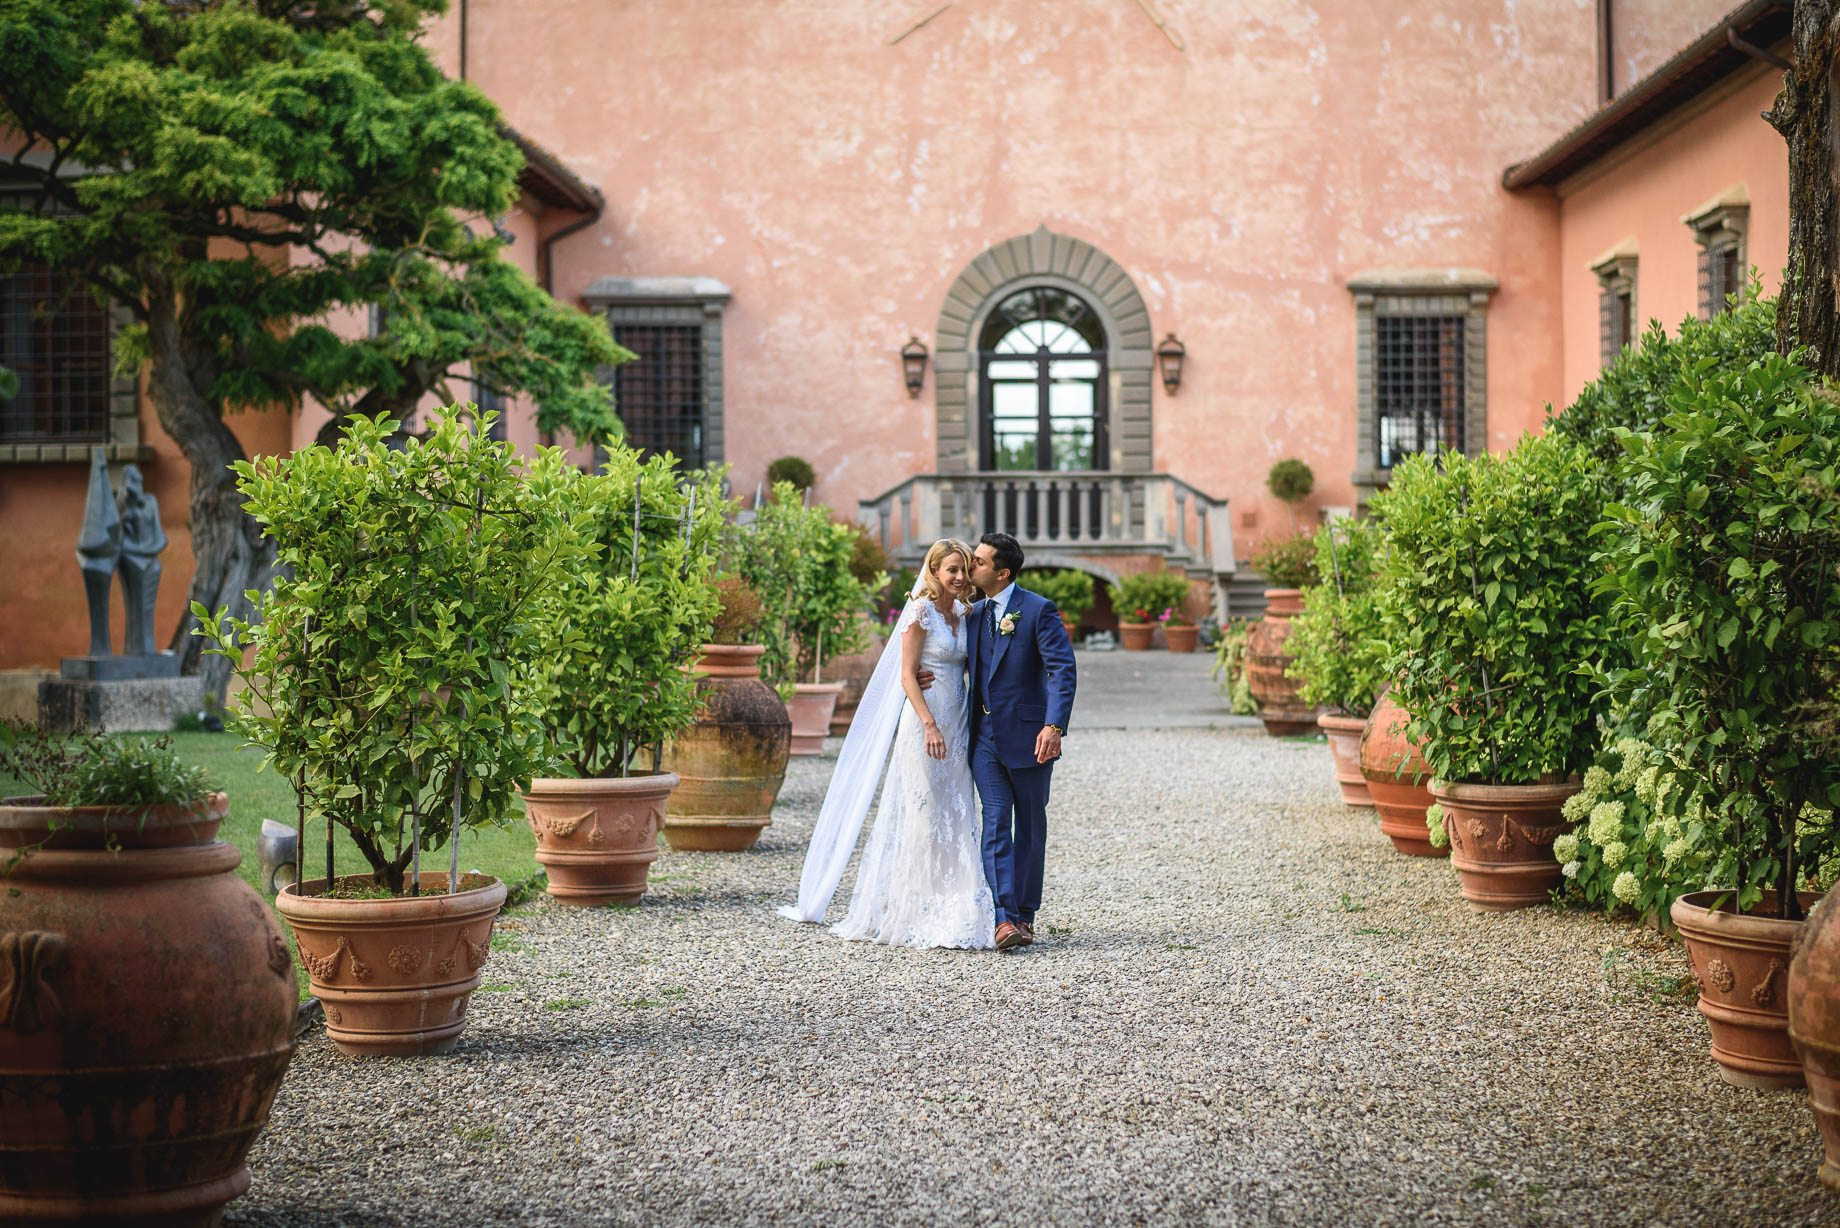 Tuscany wedding photography - Roisin and Moubin - Guy Collier Photography (140 of 251)